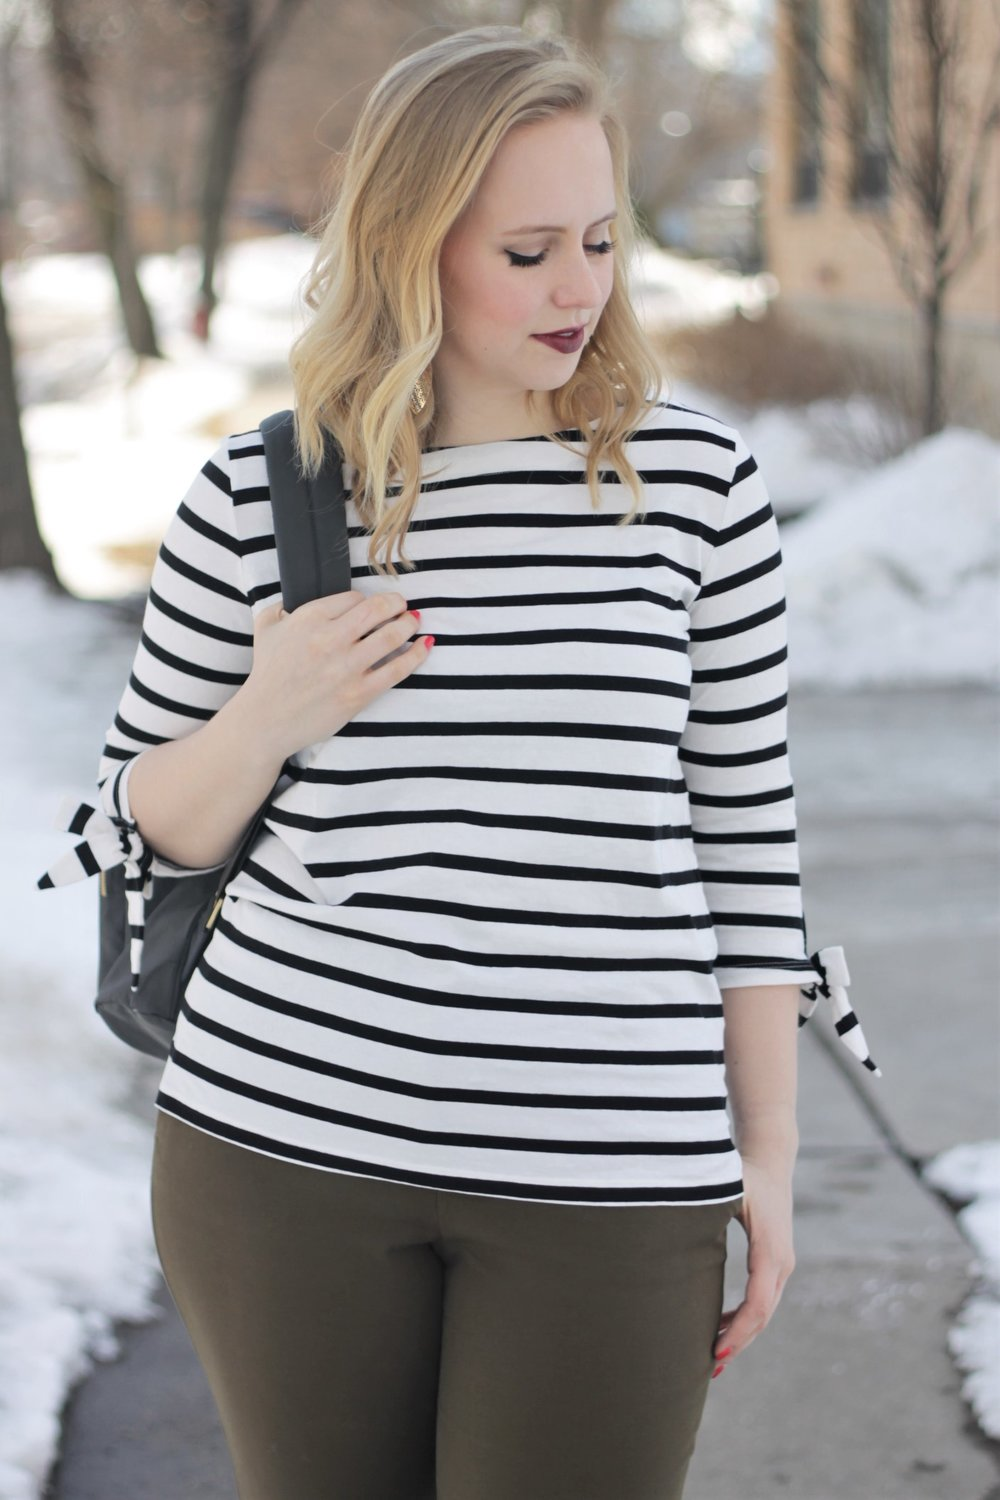 https://www.workandwhatshewore.com/home/2017/11/27/review-baggallini-for-work-with-stripes